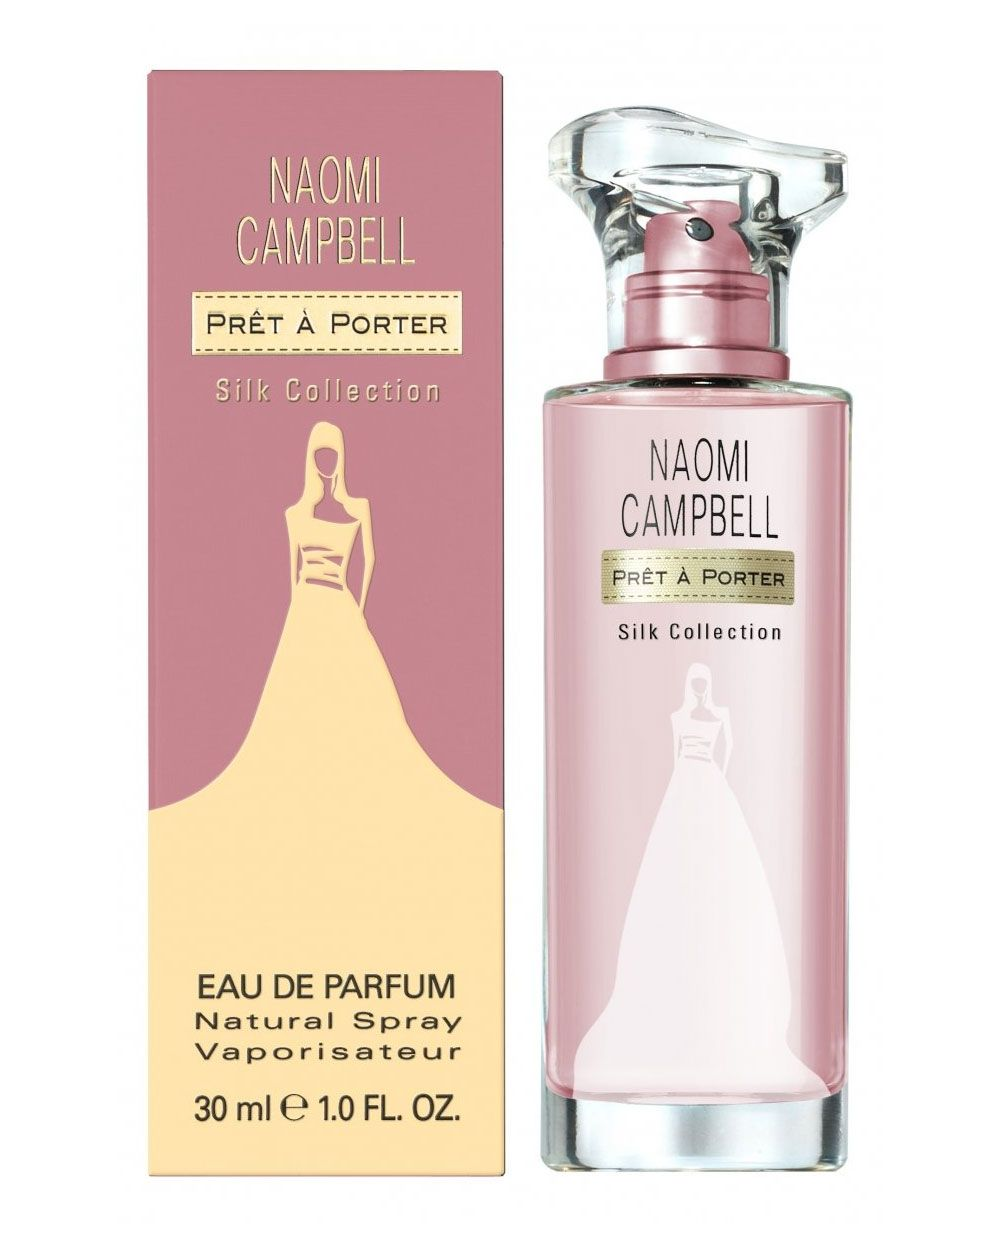 Naomi Campbell Pert A Porter Silk Collection Perfume Perfume